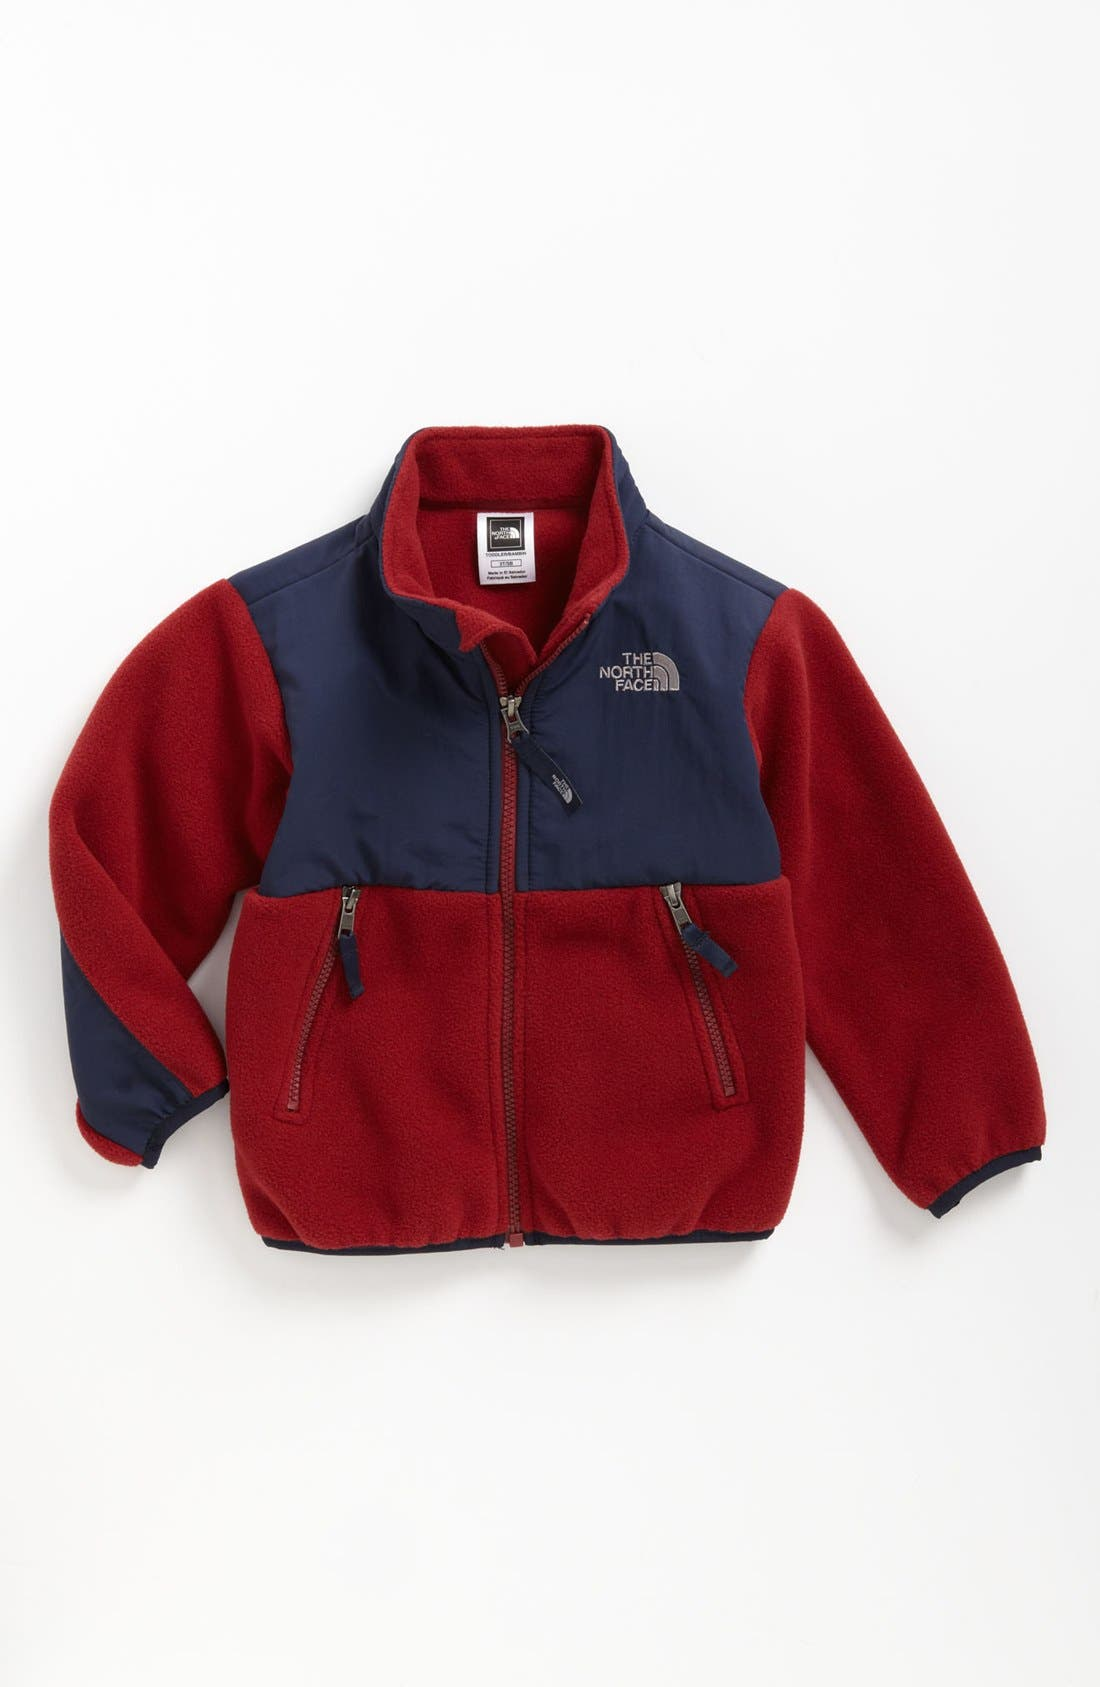 Alternate Image 1 Selected - The North Face 'Denali' Jacket (Toddler Boys)